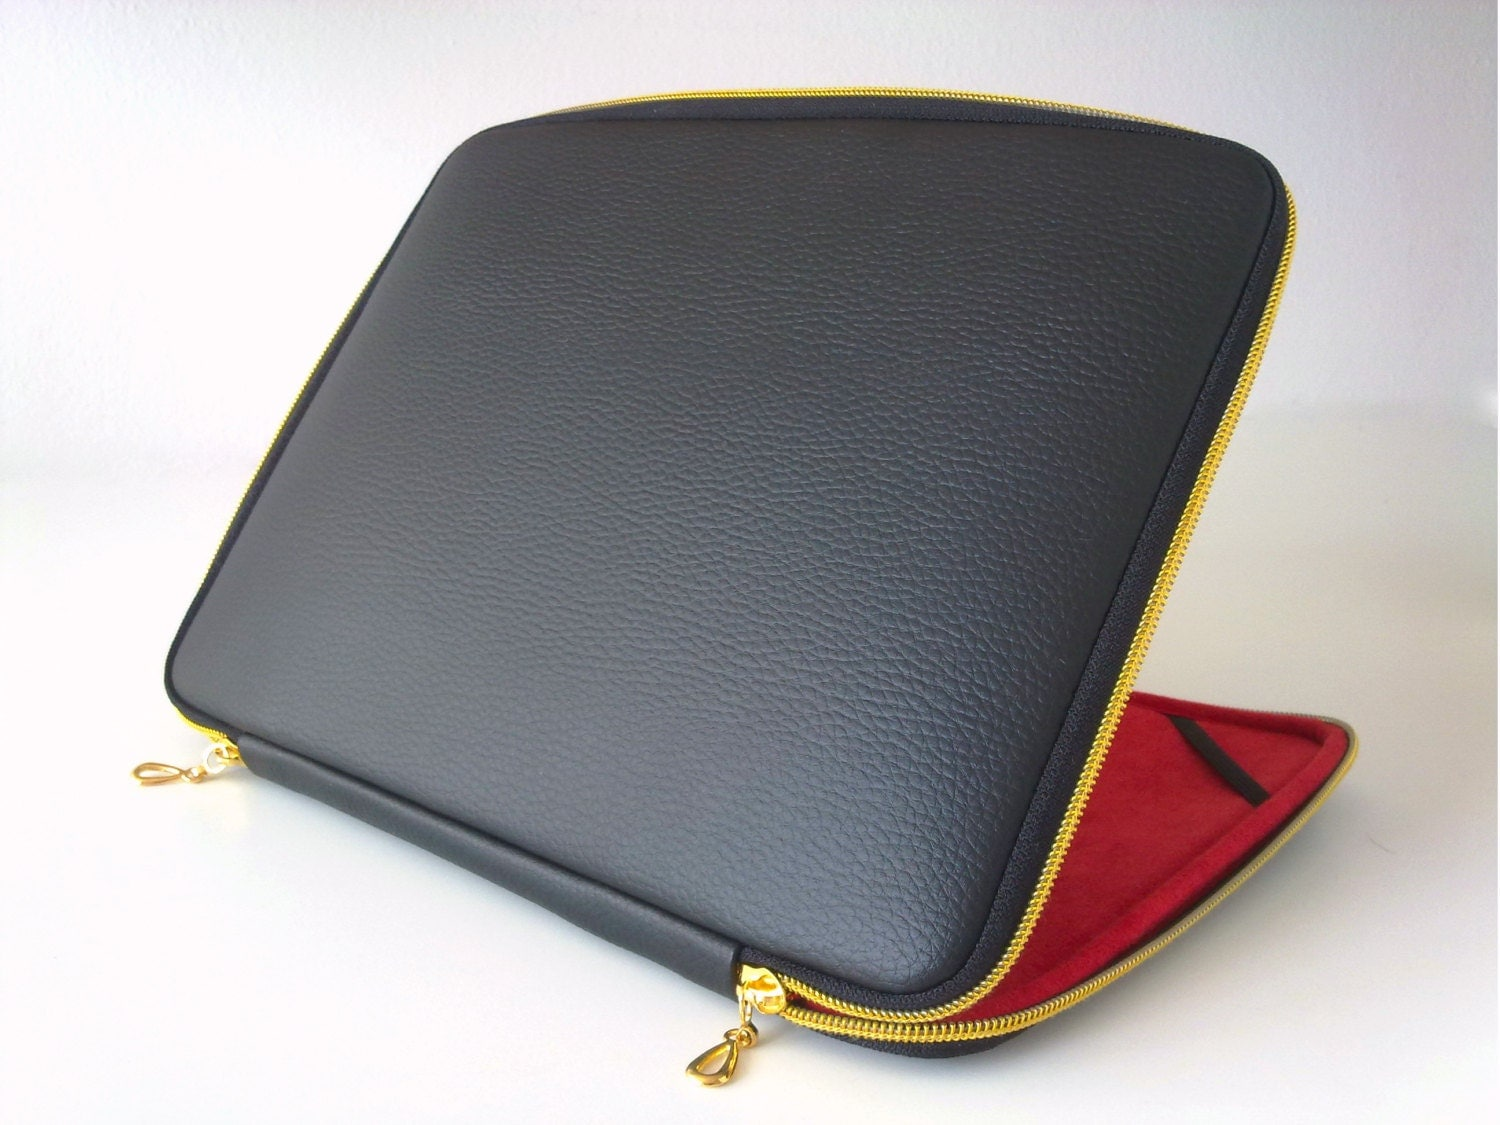 Black leather laptop caseleather caselaptop sleeveleather for Housse ordinateur 14 pouces originale